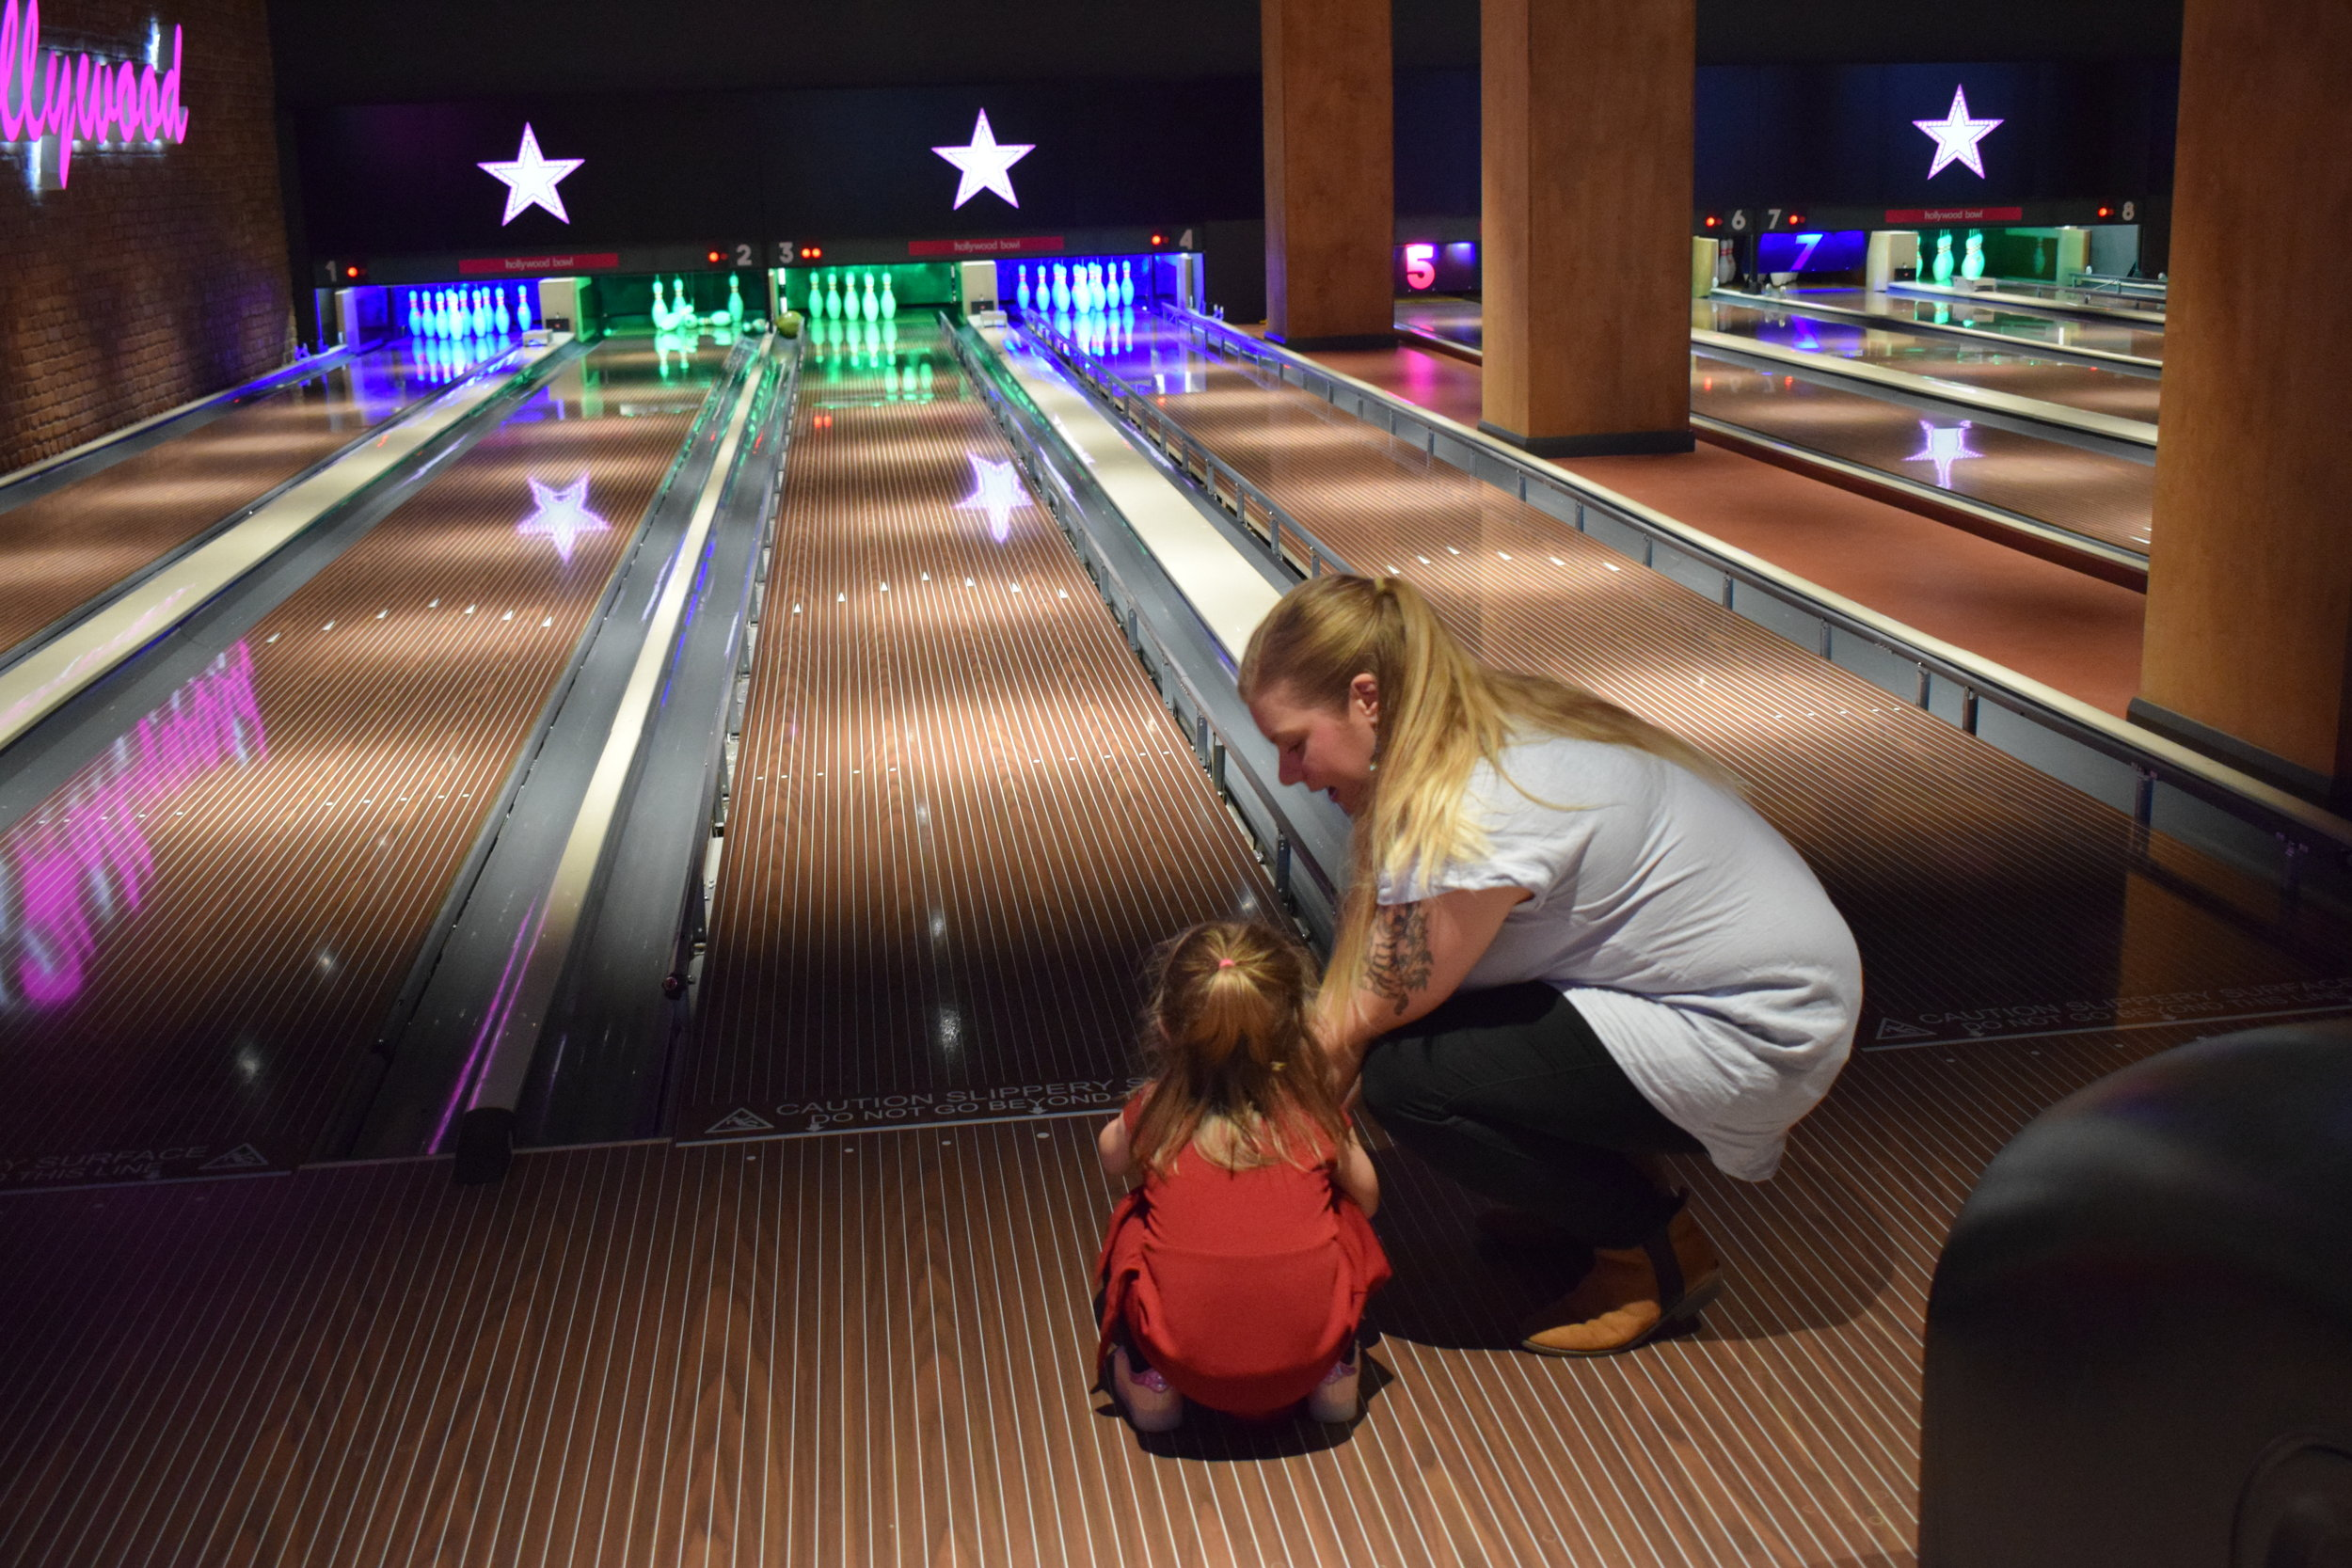 Teaching Pickle to bowl at Hollywood Bowl, Intu Watford